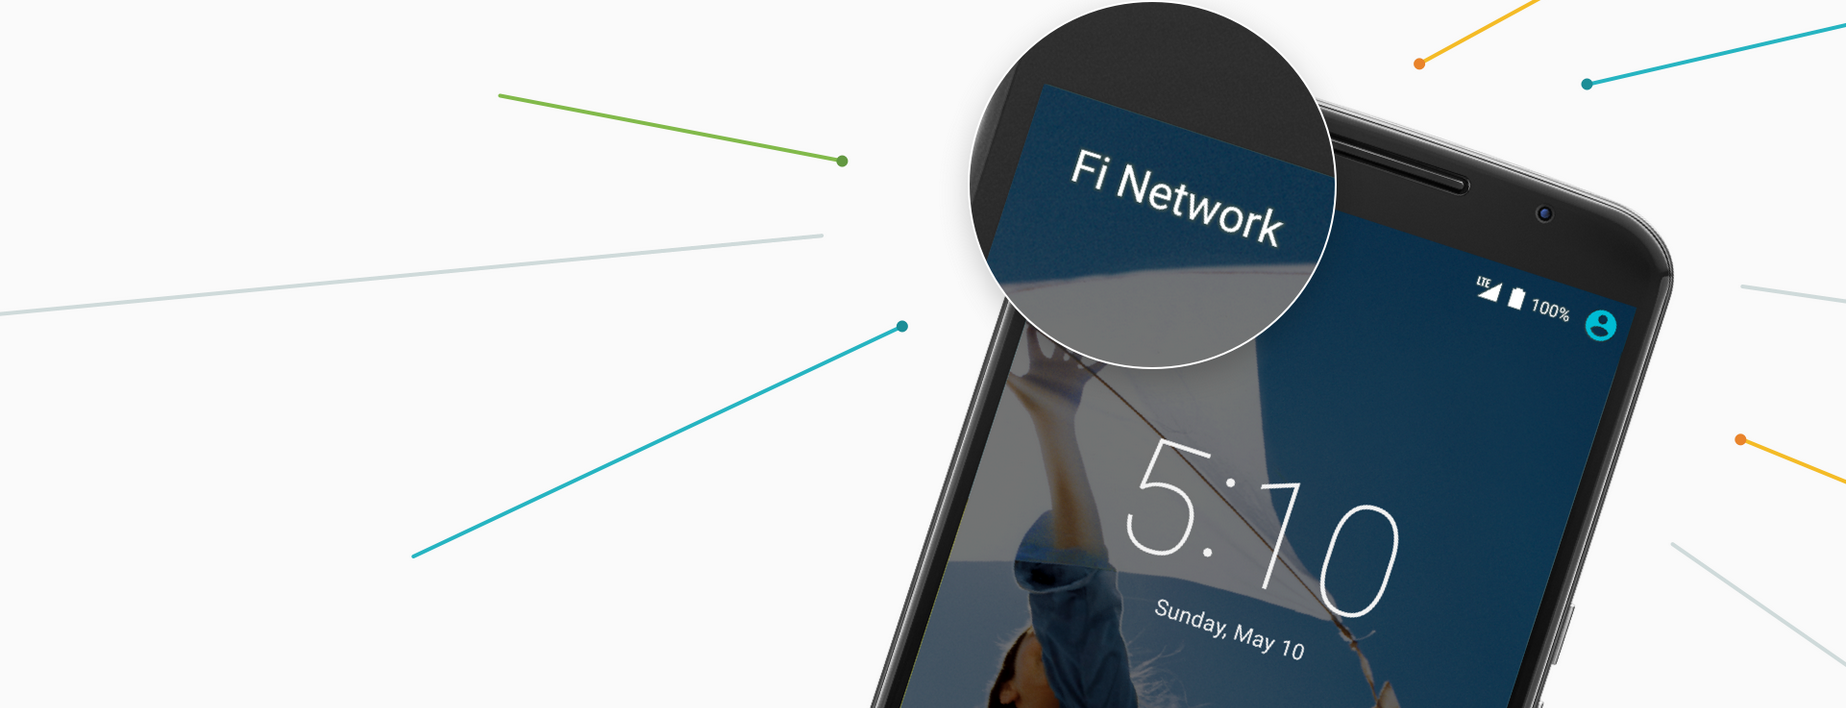 Google Launches Project Fi, its Mobile Service for Nexus 6 Users